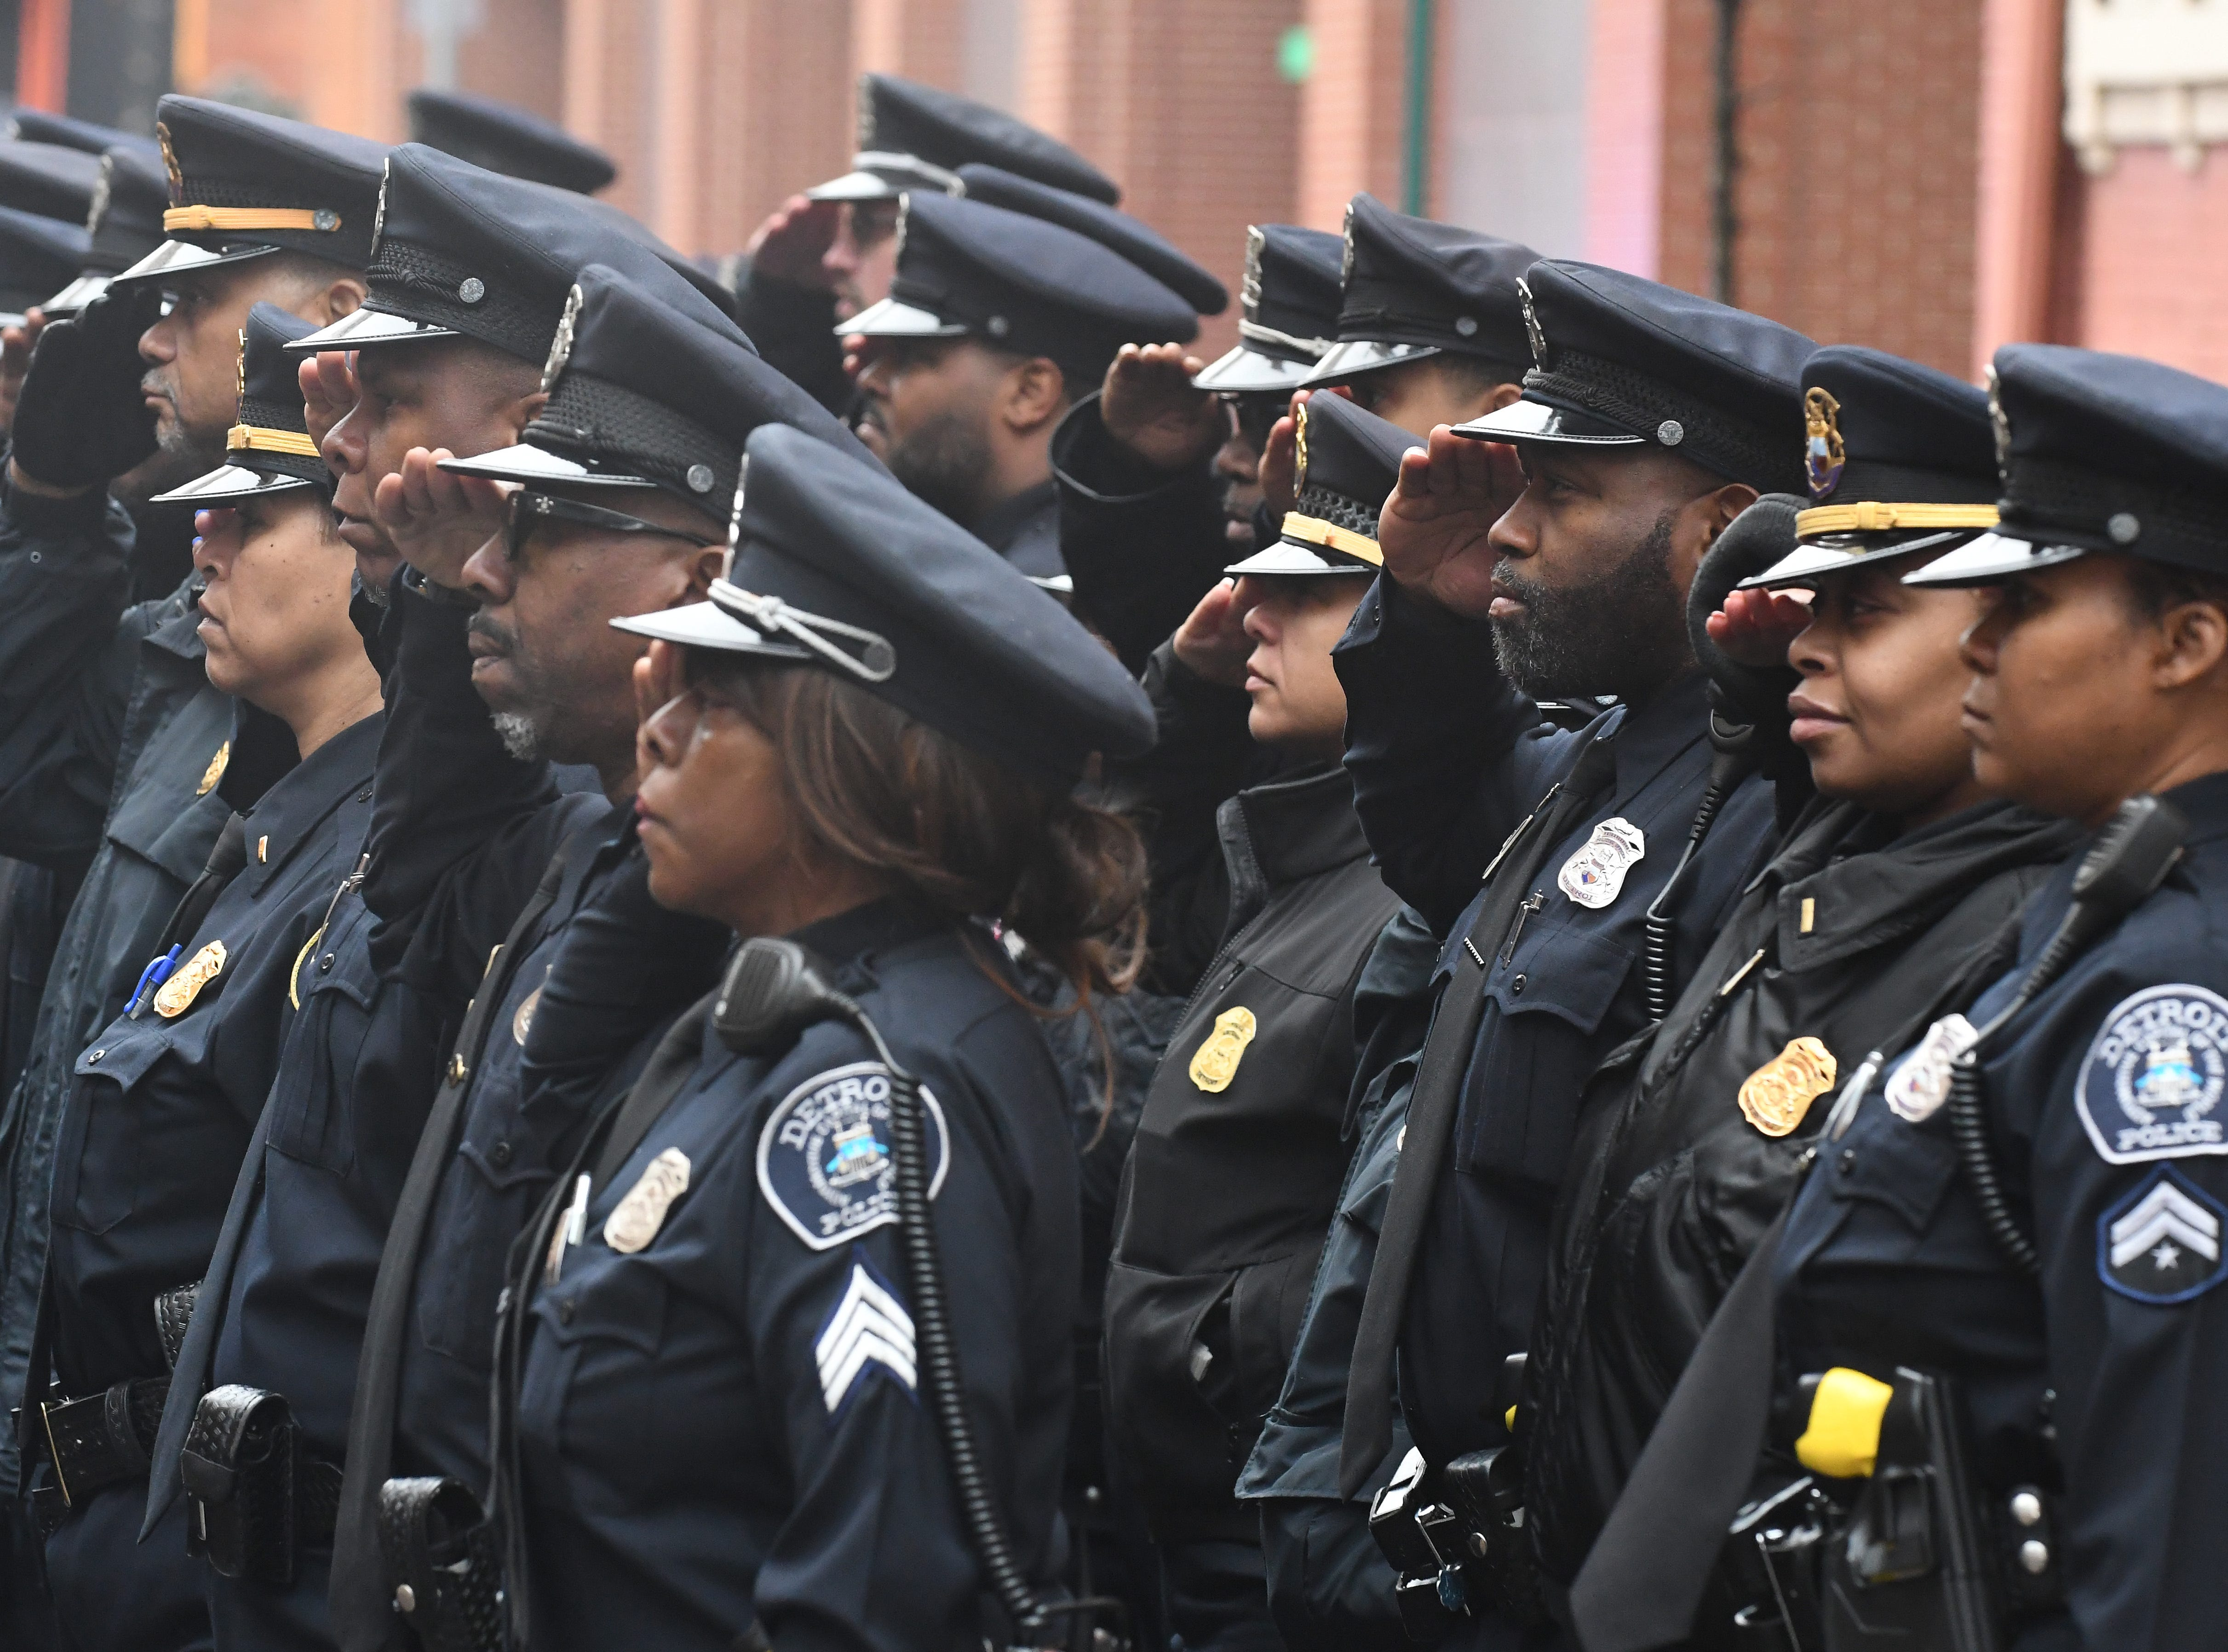 Detroit Police Officers stand at attention and salute outside the Old St. Mary's Church before the 46th Annual Detroit Police Interfaith Memorial Service. Detroit Police Department march and 46th Annual Detroit Police Interfaith Memorial Service to honor fallen officers at Old St. Mary's Church in Detroit, Michigan on May 3, 2019. (Image by Daniel Mears/ The Detroit News).